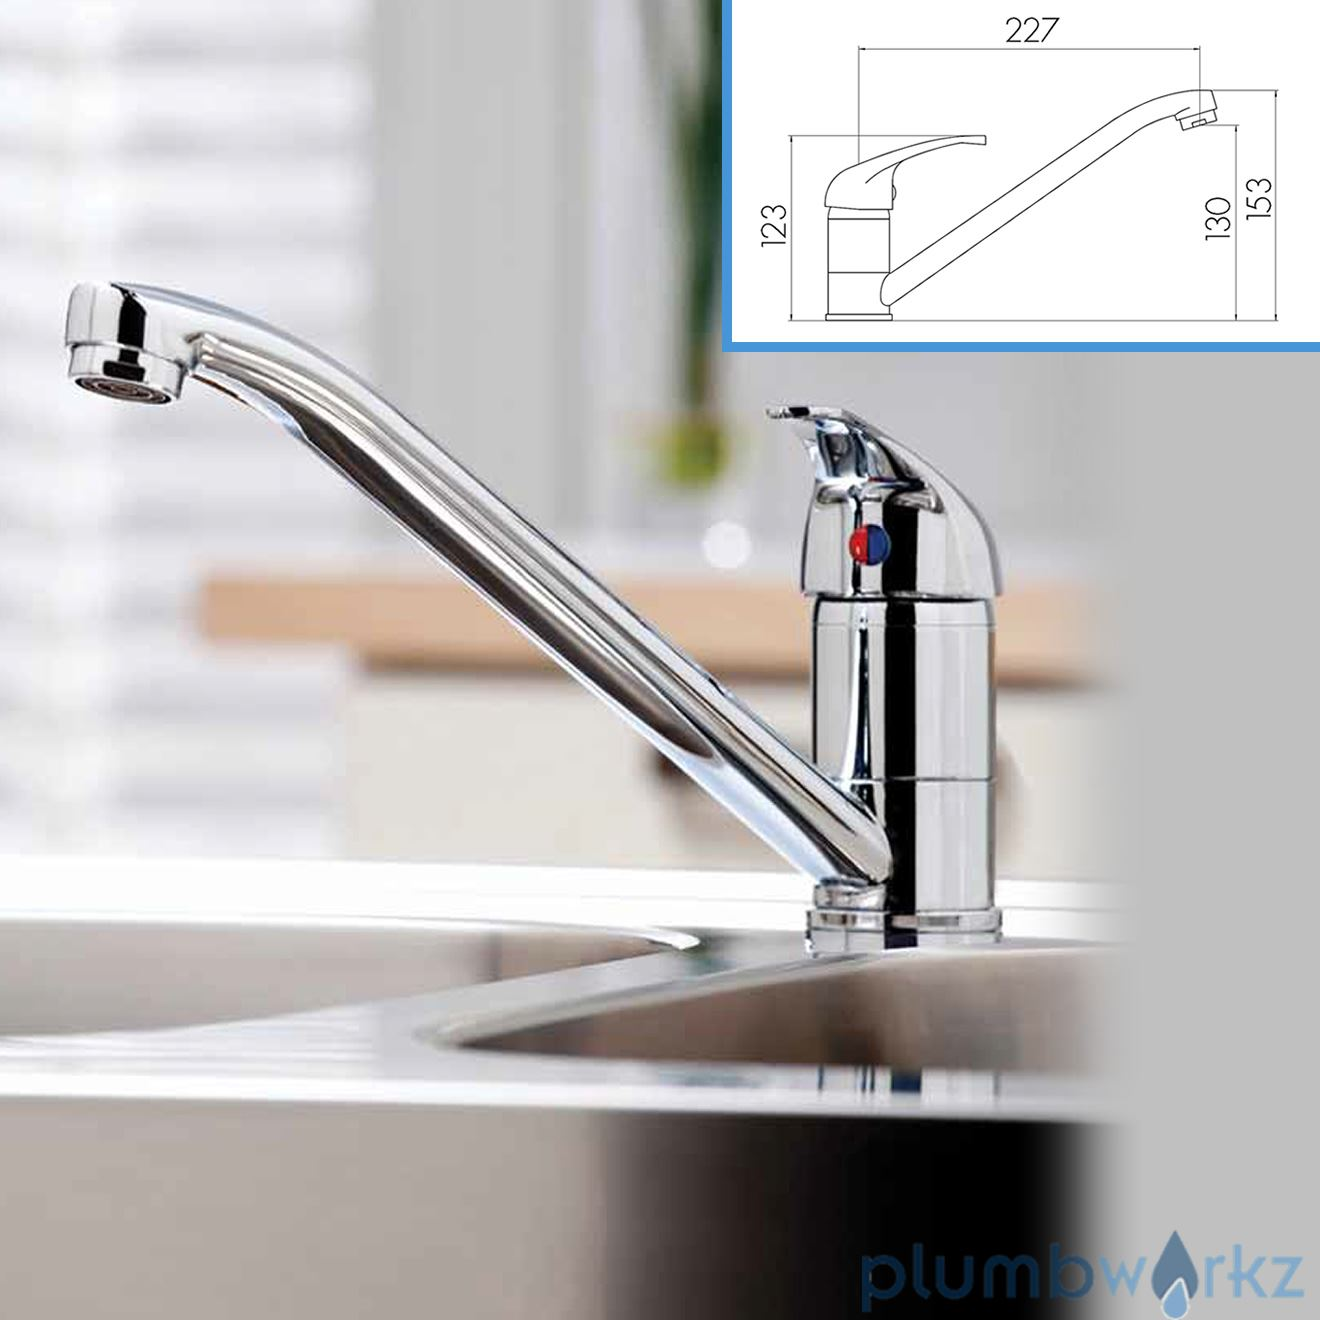 Arruba Kitchen Tap